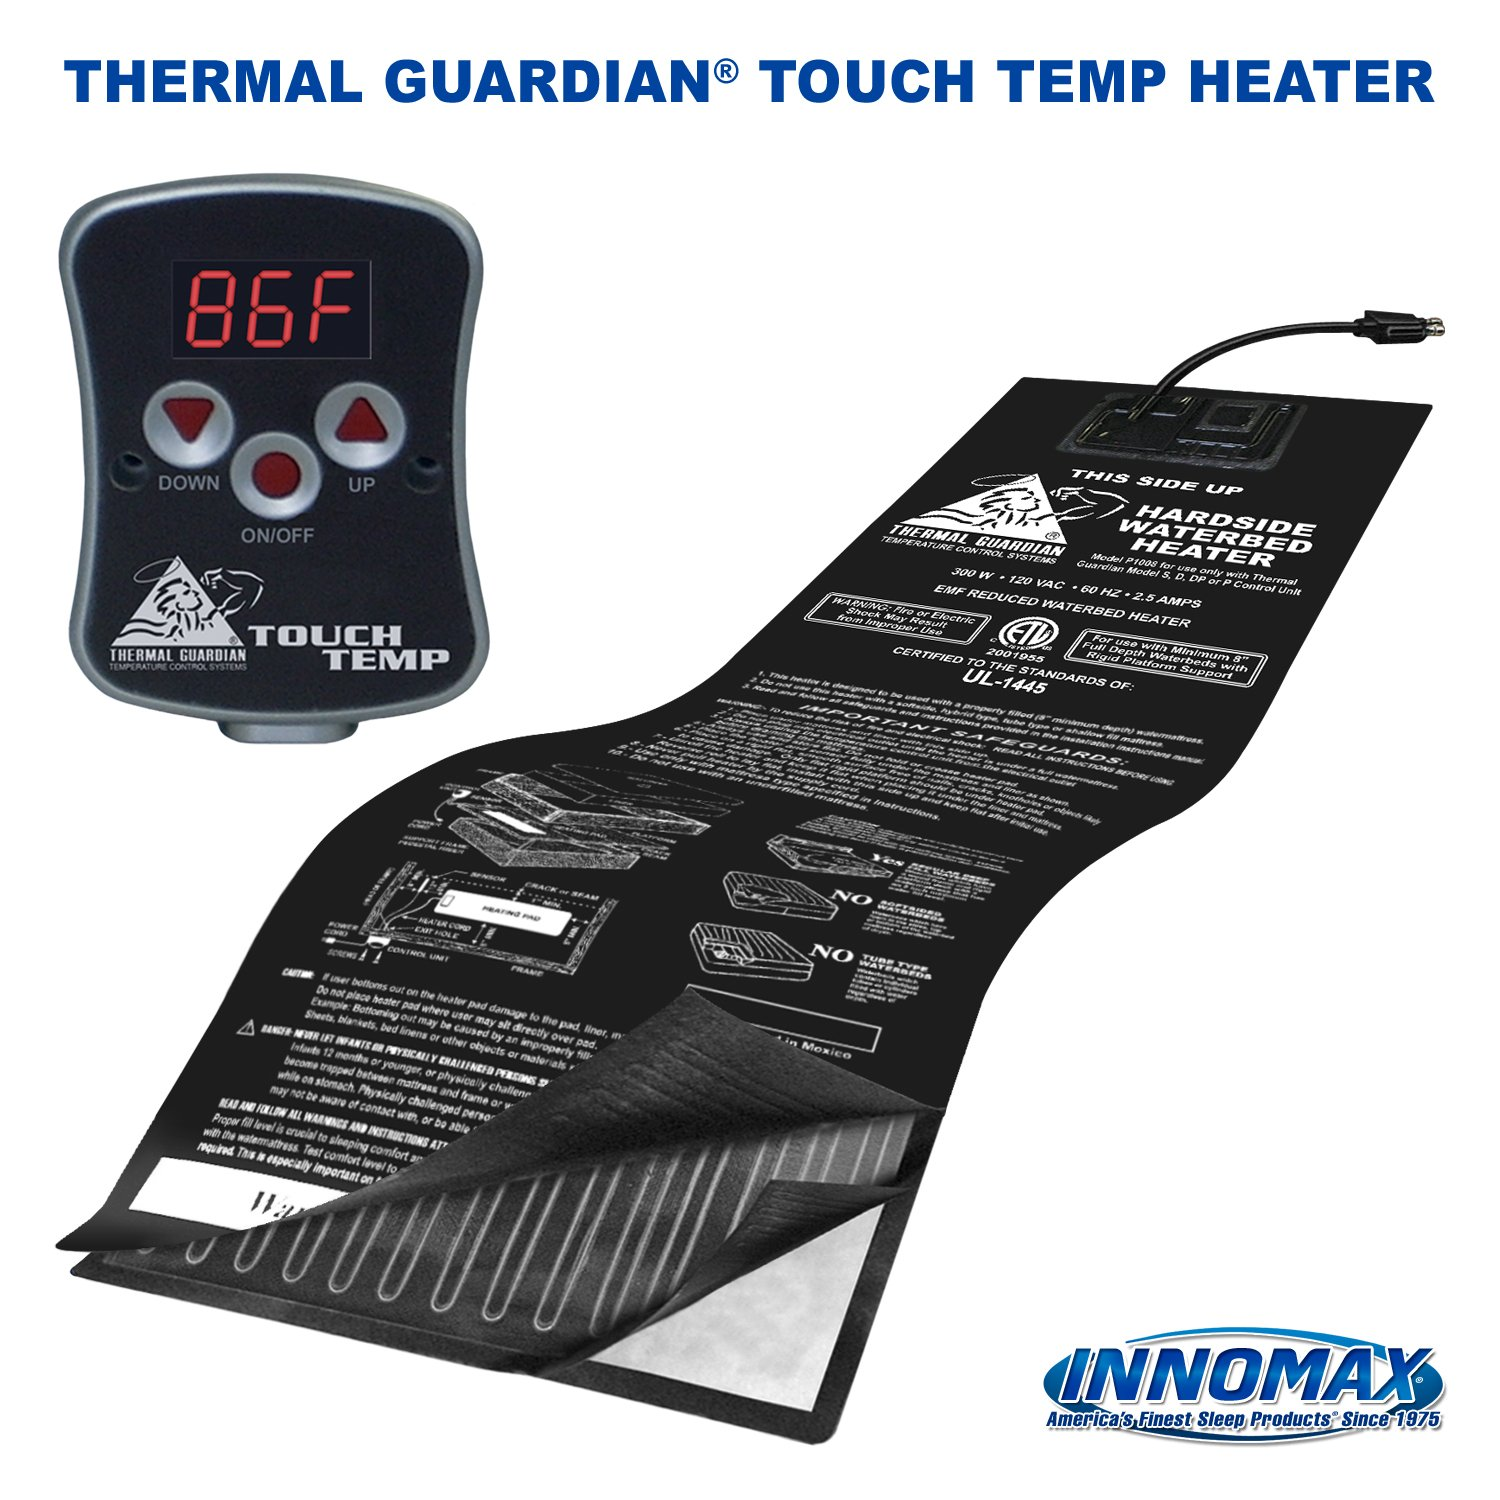 INNOMAX Thermal Guardian Touch Temp Solid State Hardside Waterbed Heater Full Watt InnoMax Corp 3-1048-TOUCH-FW